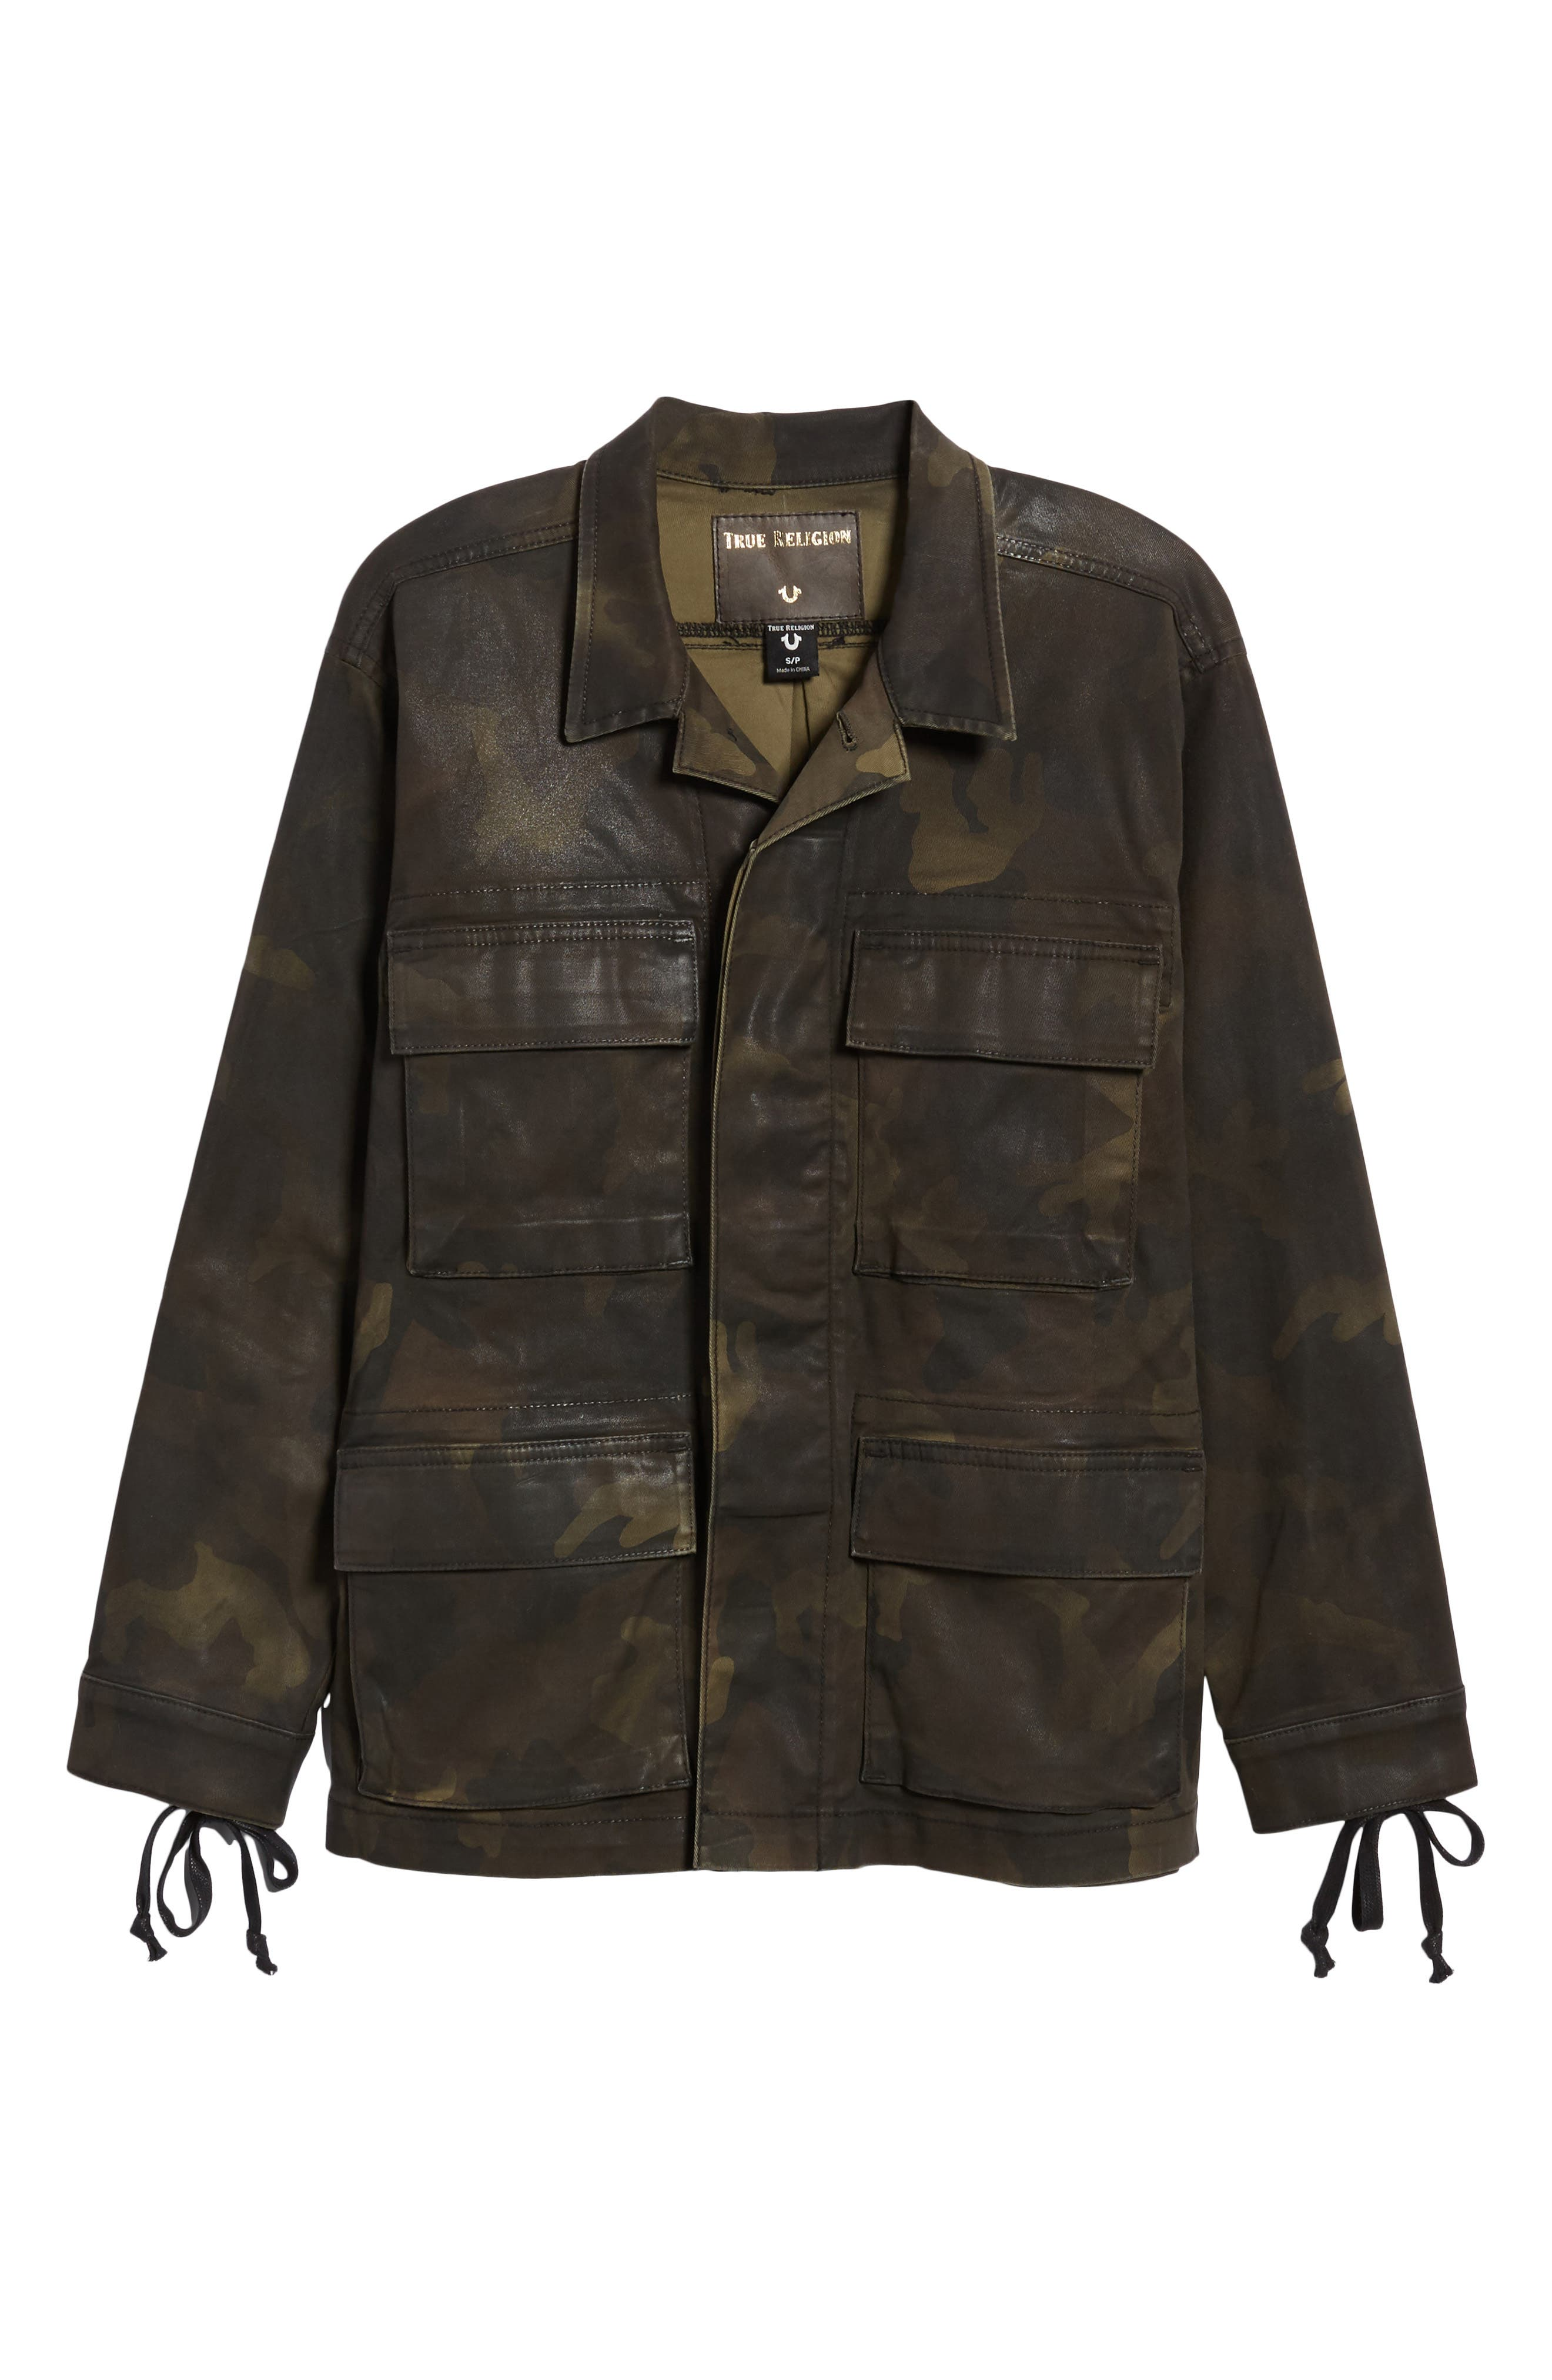 TRUE RELIGION BRAND JEANS,                             Coated Military Jacket,                             Alternate thumbnail 5, color,                             300